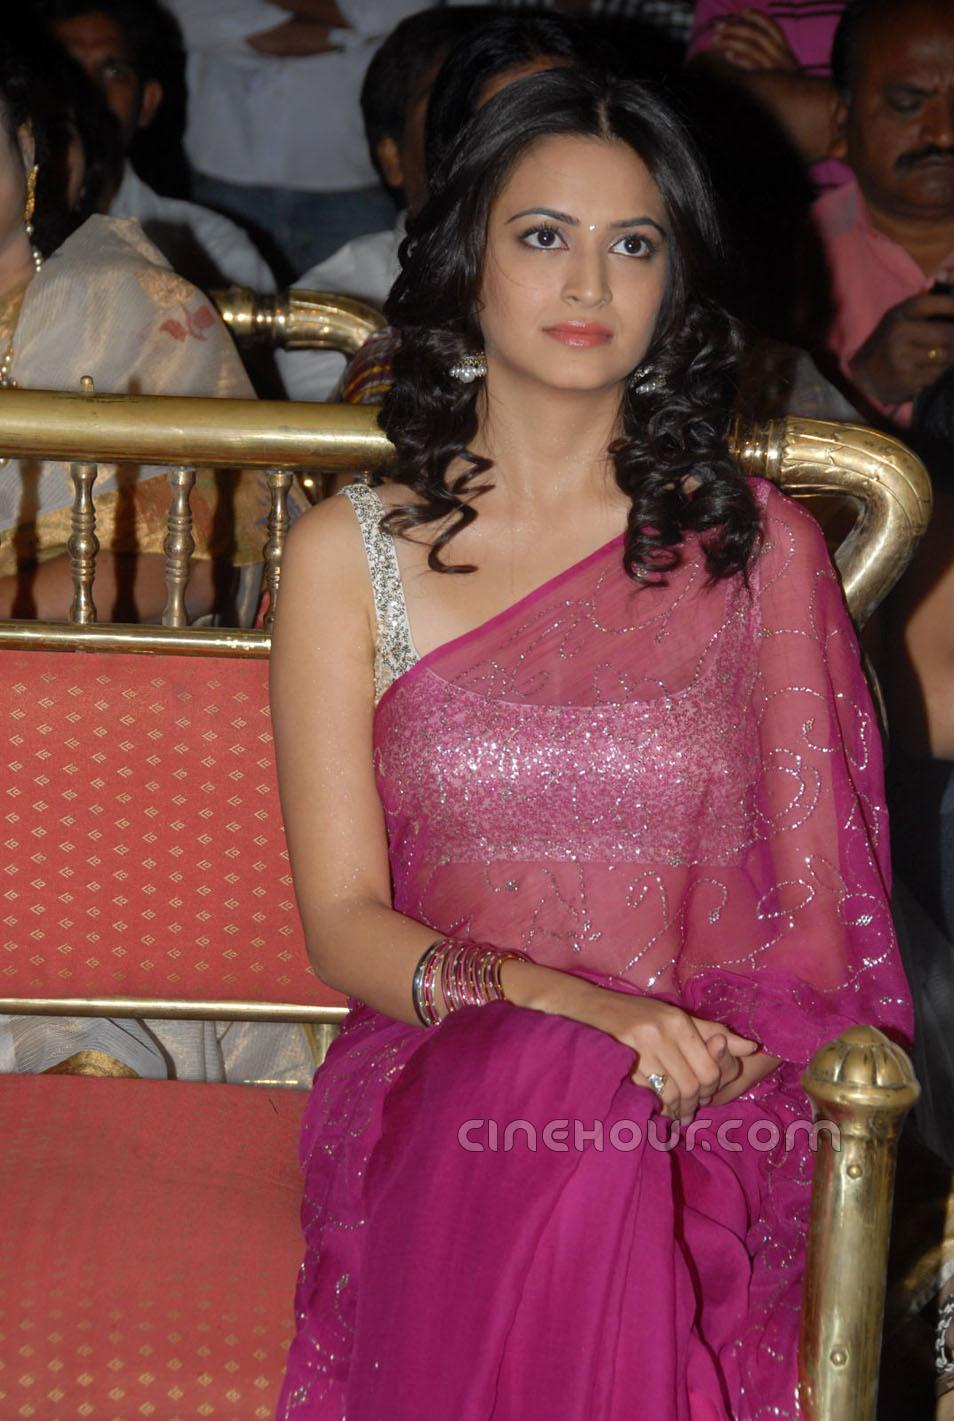 Kriti Kharbanda in Saree1 - Kriti Kharbanda in Saree at Mr Nokia Audio Launch